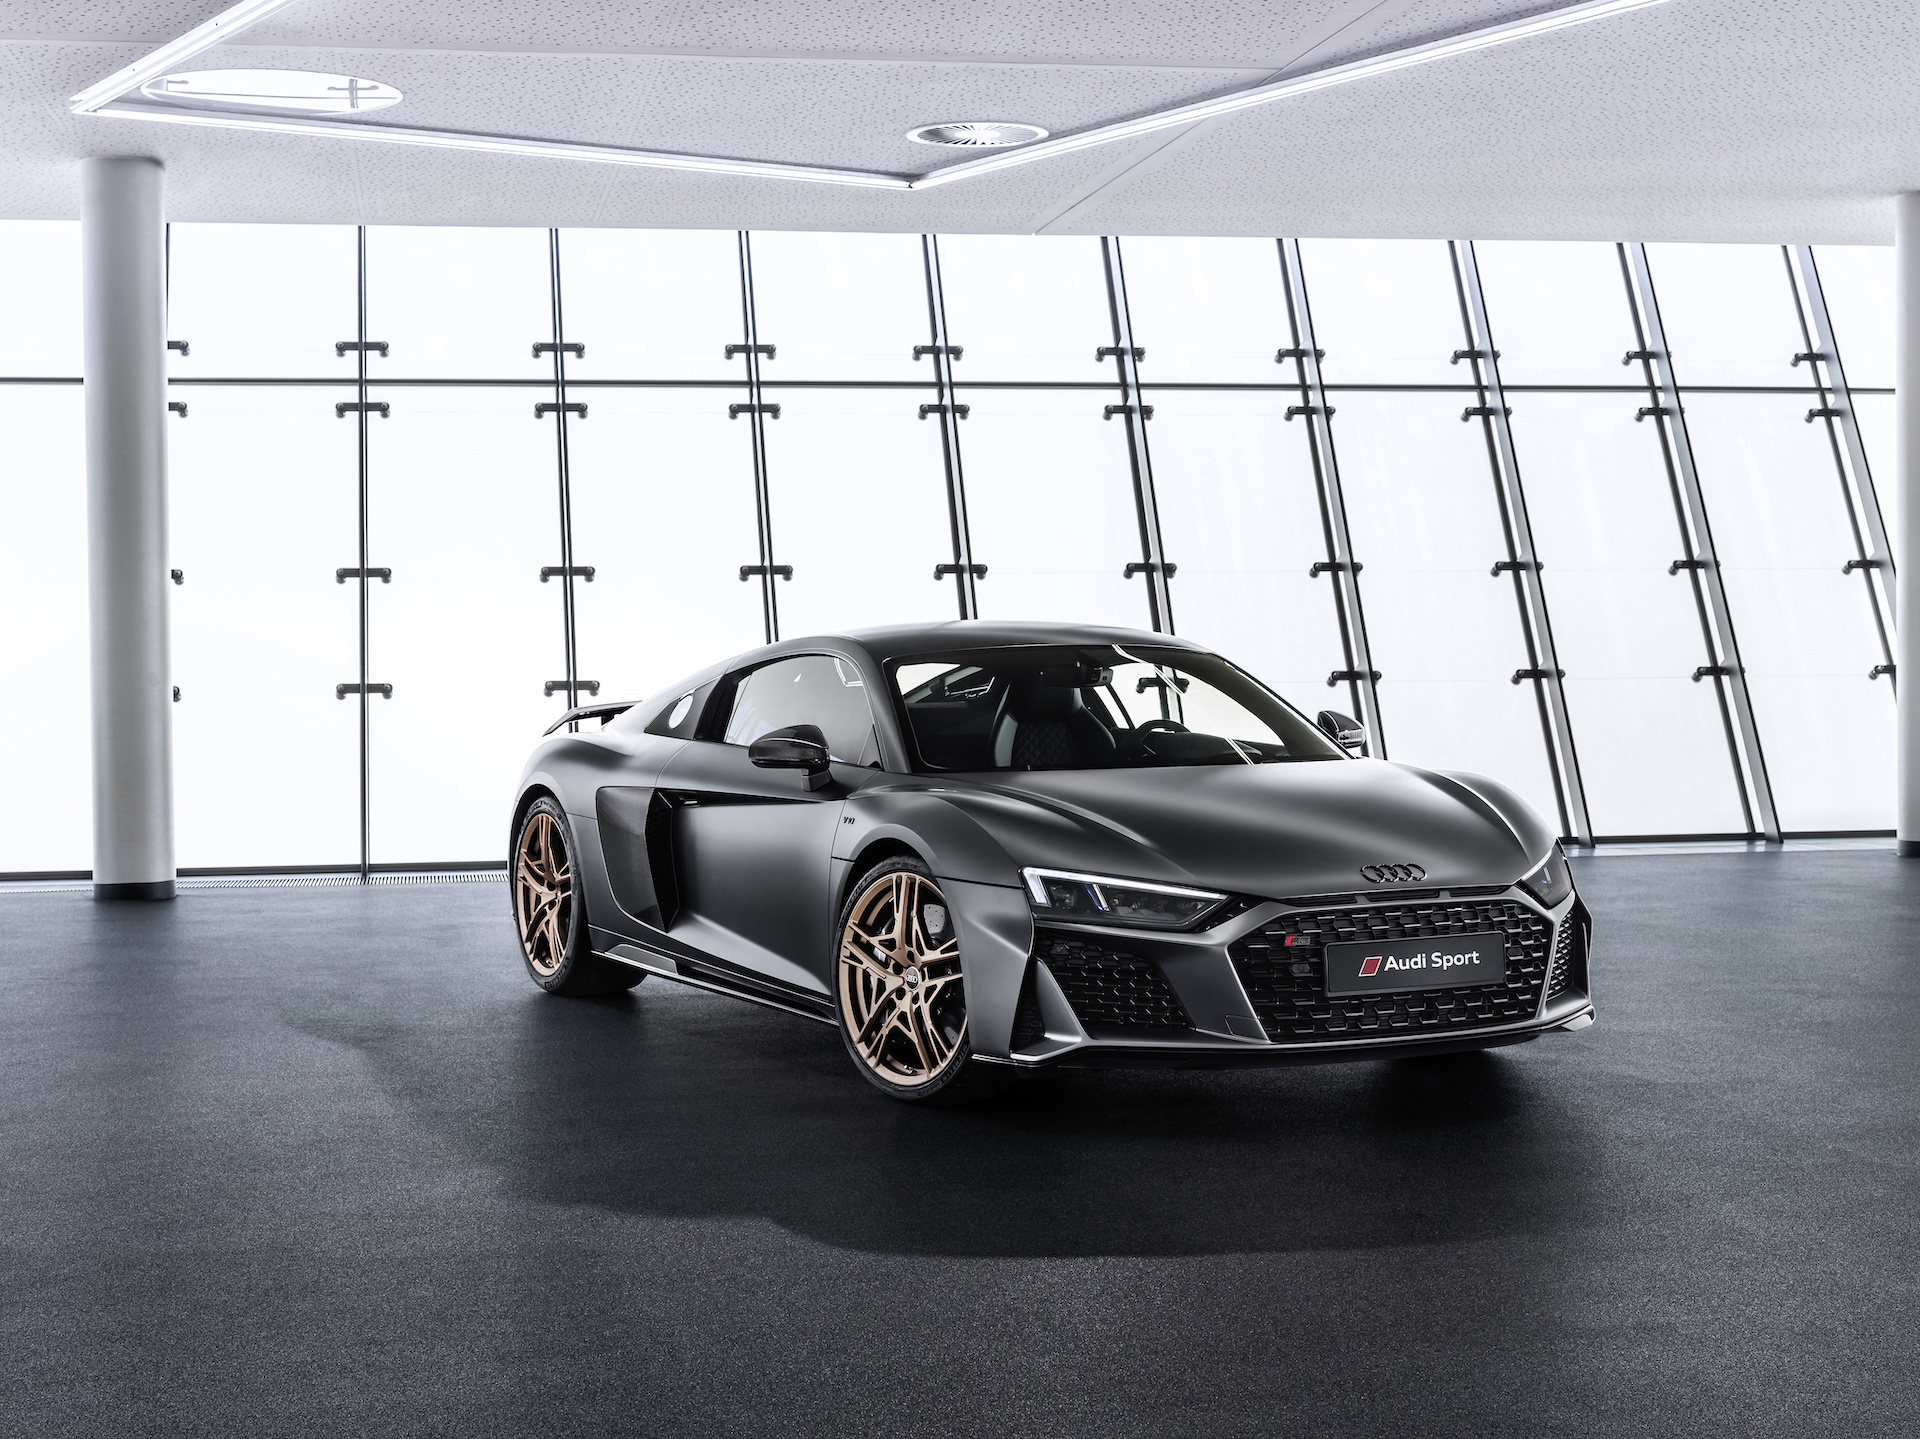 2019 Audi R8 V10 Decennium (Color: Daytona Gray Matt) Front Wallpapers (2)